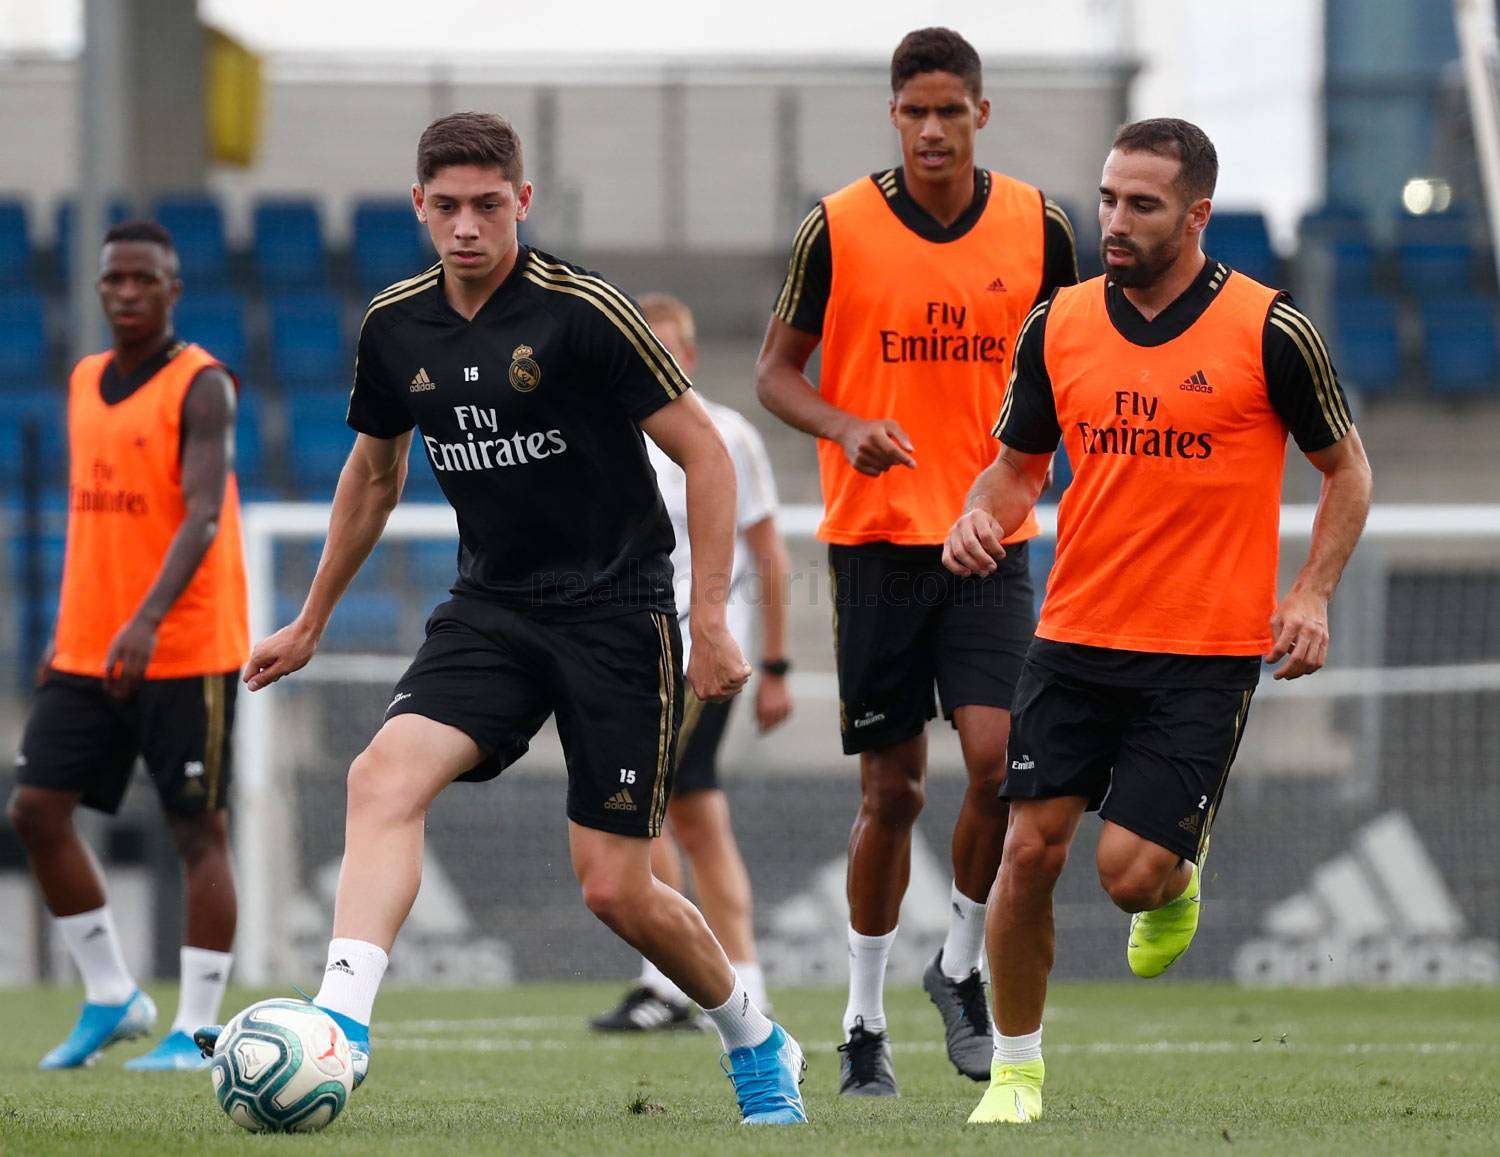 Real Madrid - Entrenamiento del Real Madrid  - 19-08-2019